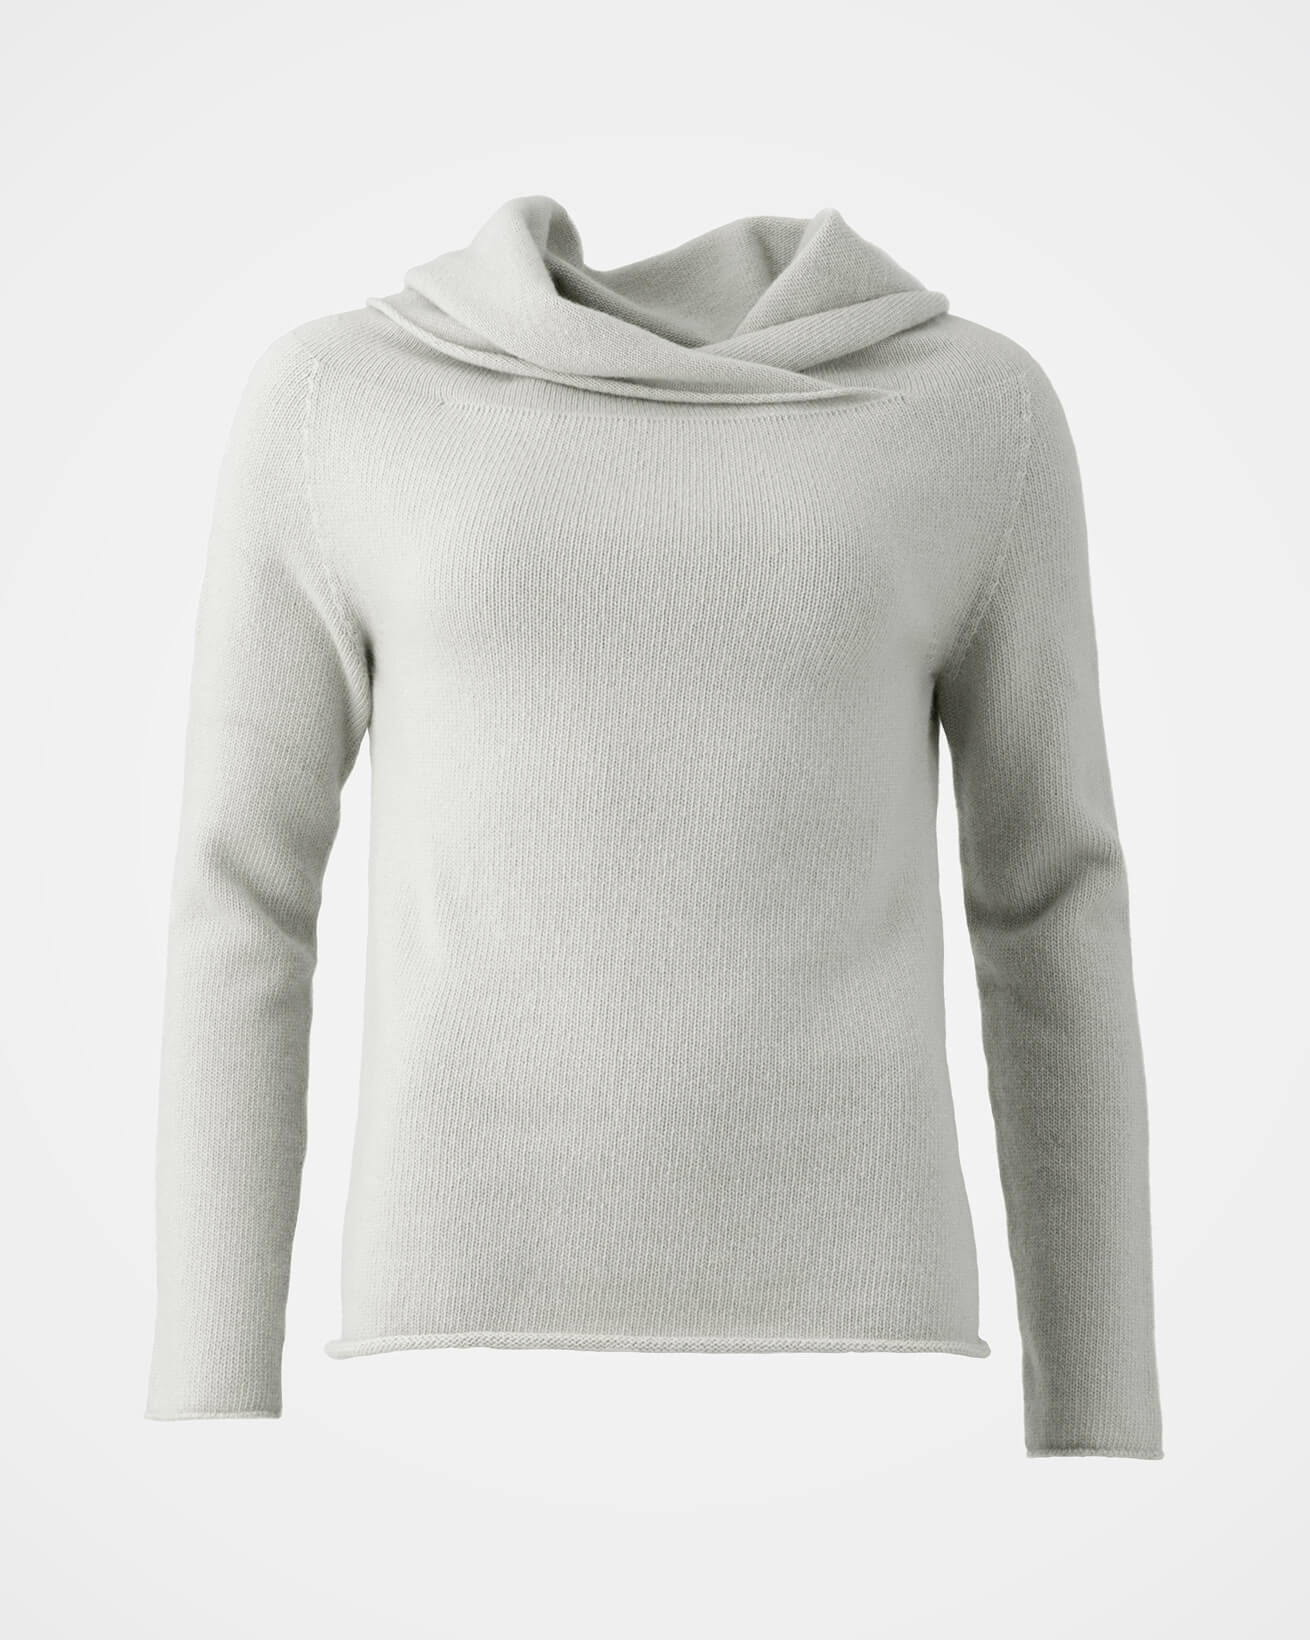 6284_collared-slouch_ivory_front_web.jpg